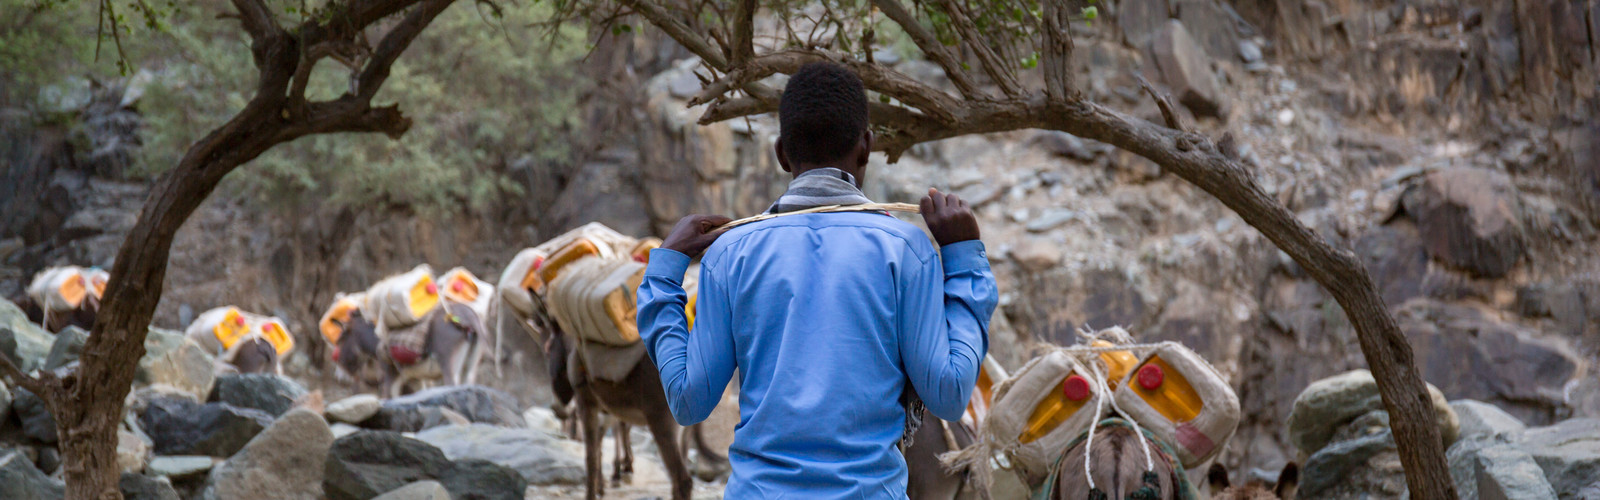 Abdella climbs a mountain to collect water for his family.